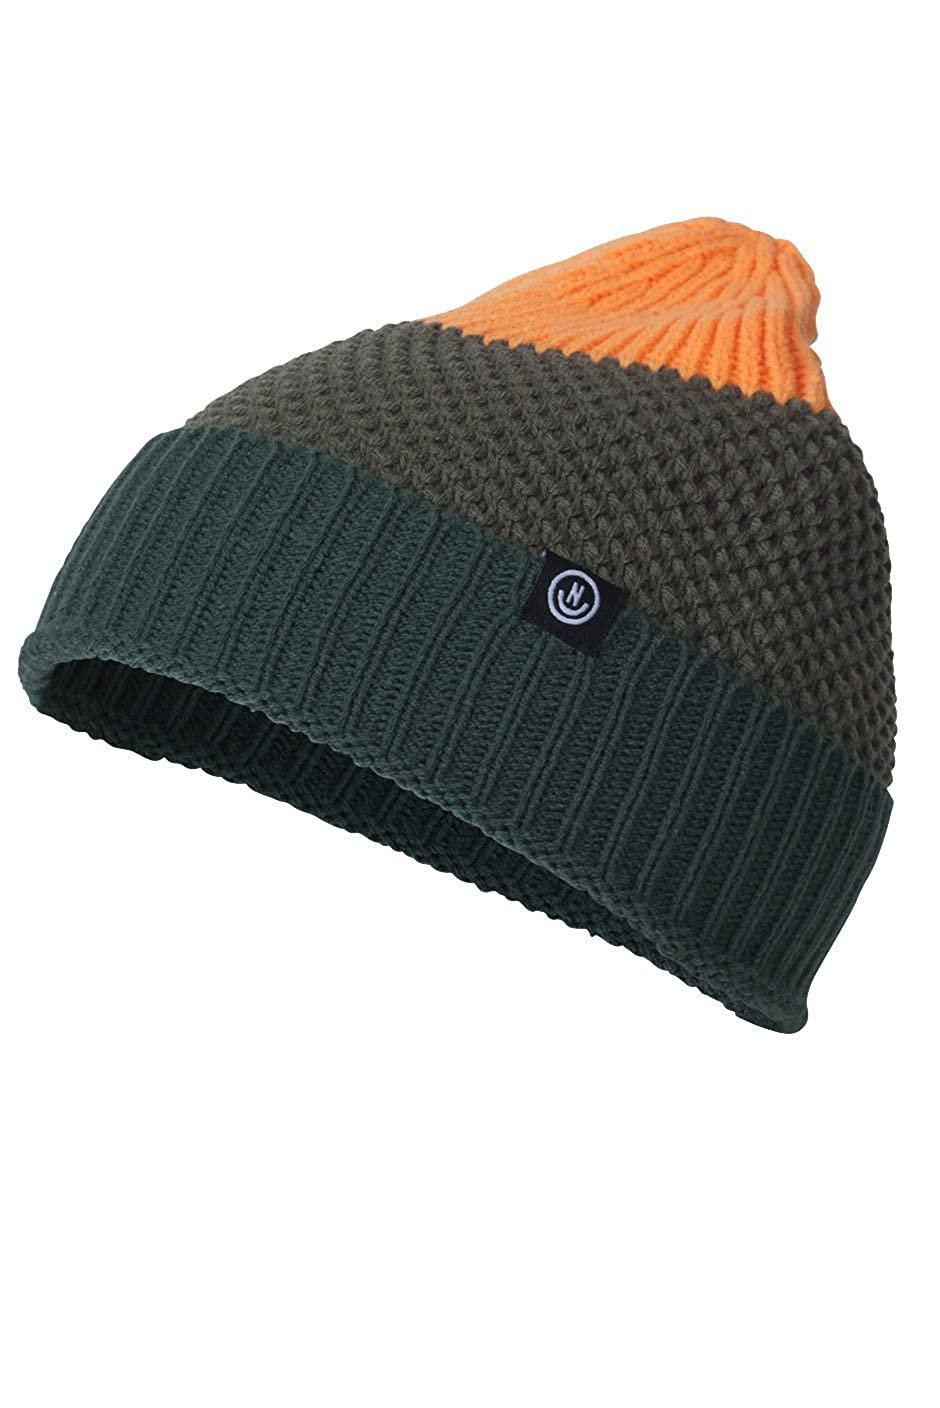 47c6c3d058c Amazon.com  NEFF Men s Scrappy Beanie Hat